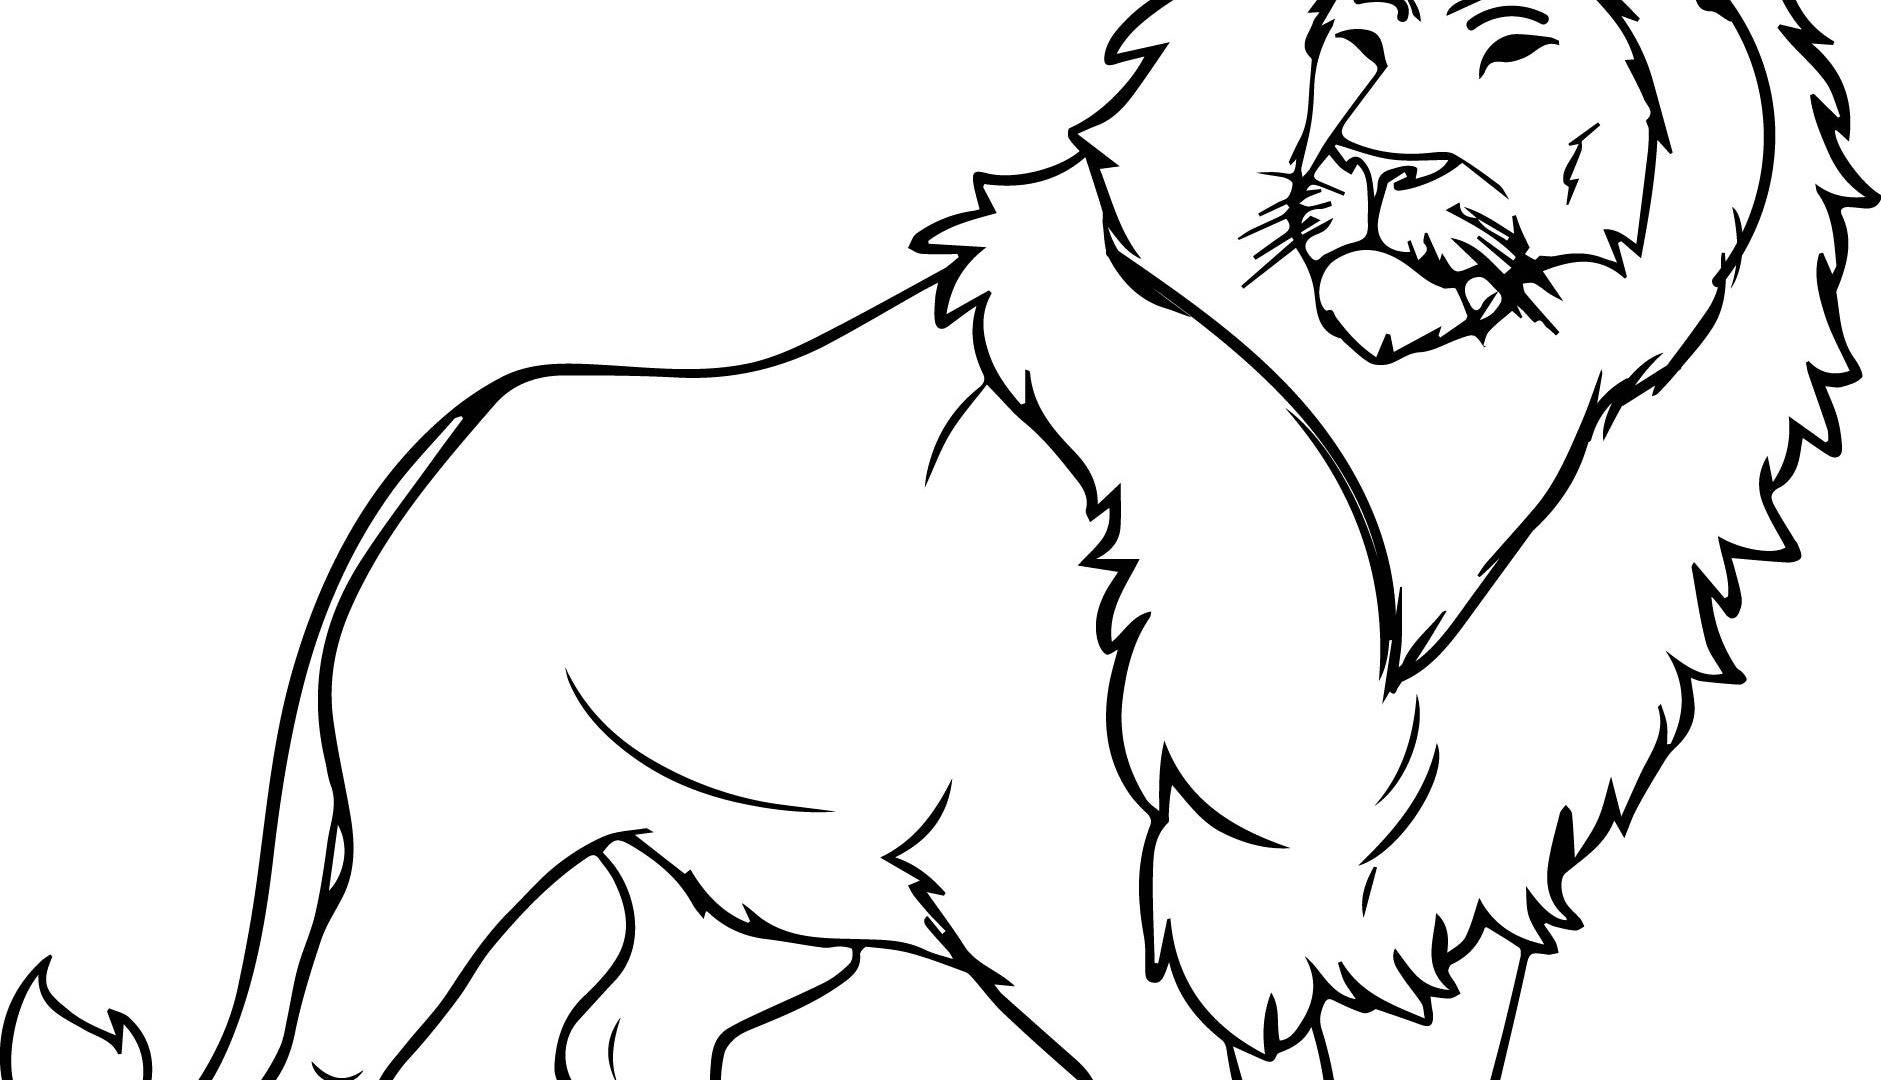 Loin Drawing at GetDrawings.com | Free for personal use Loin Drawing ...